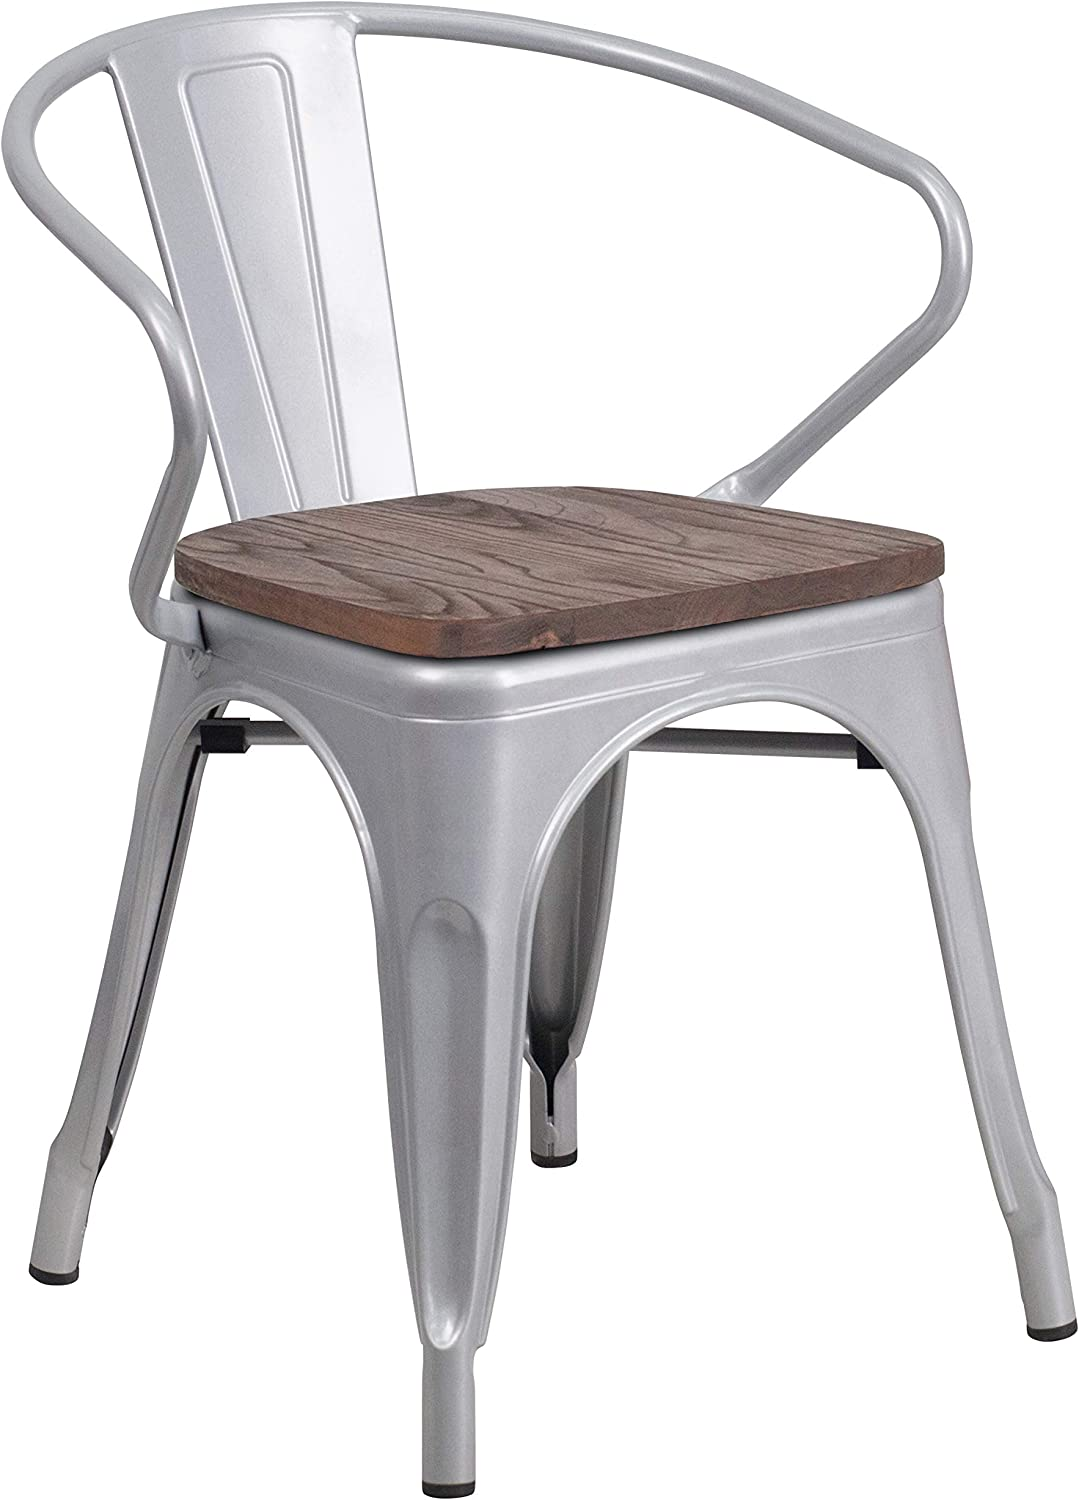 Flash Furniture Silver Metal Chair with Wood Seat and Arms